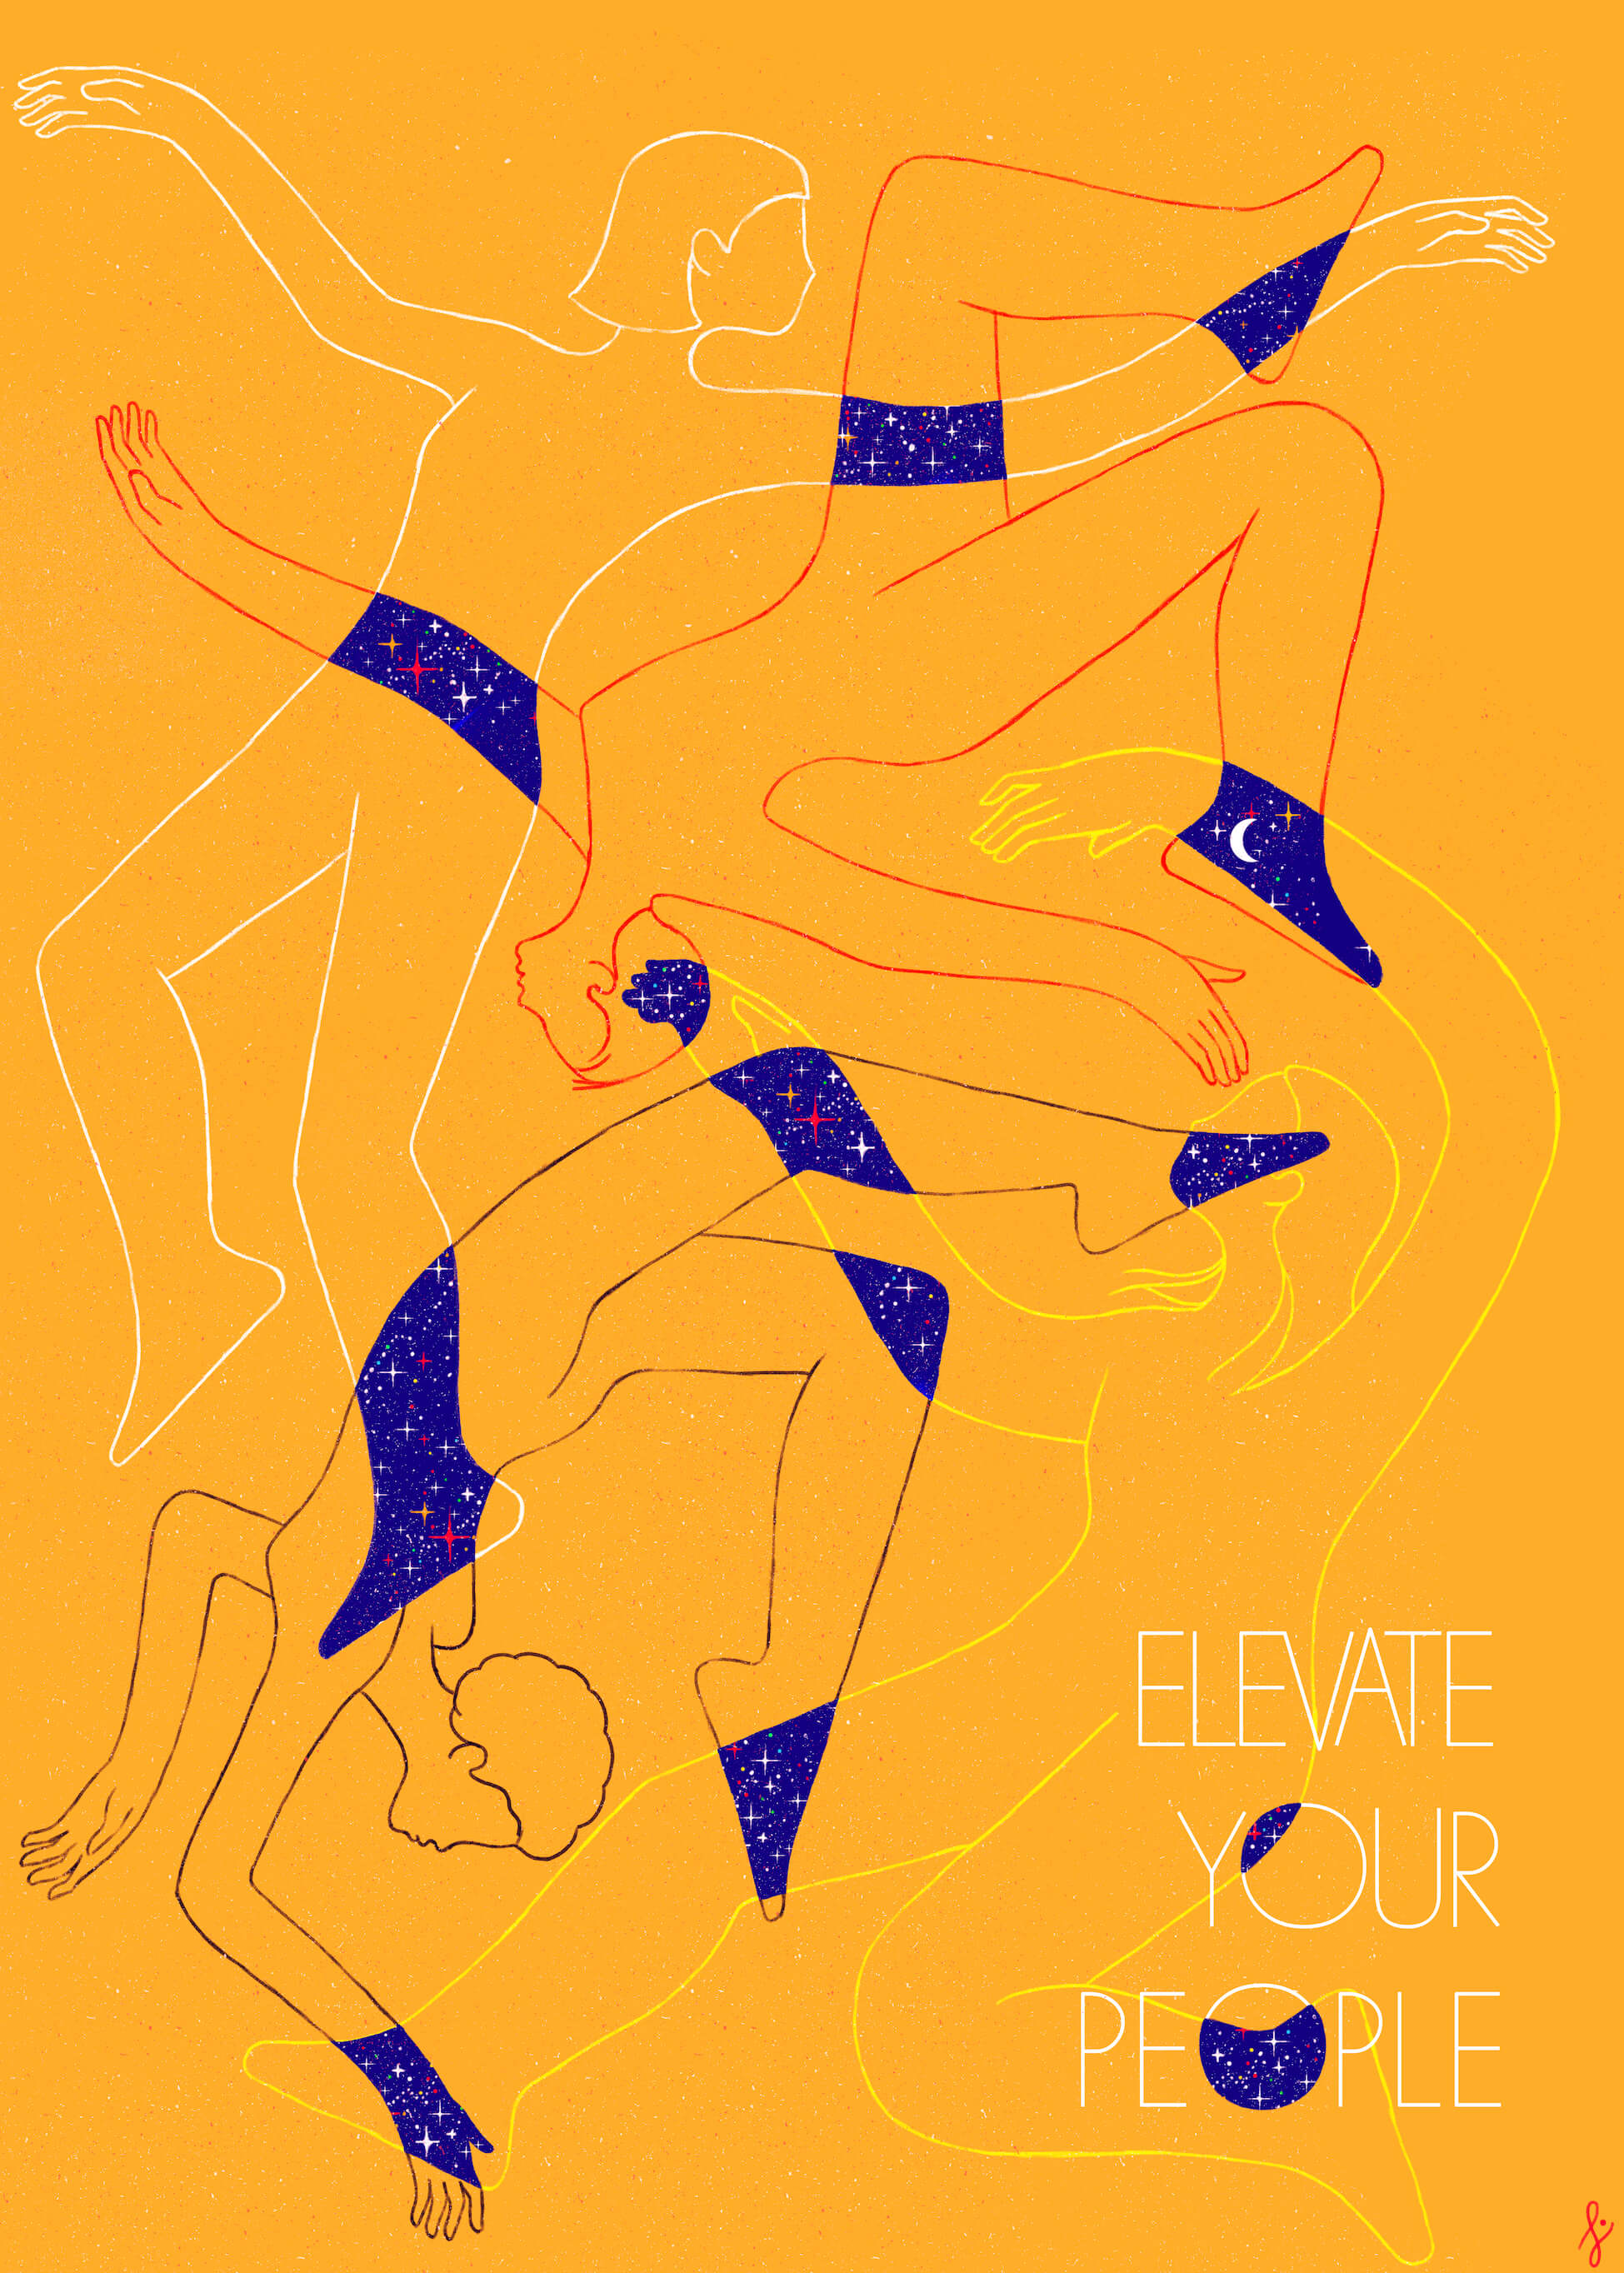 Elevate Your People 1/3 main image